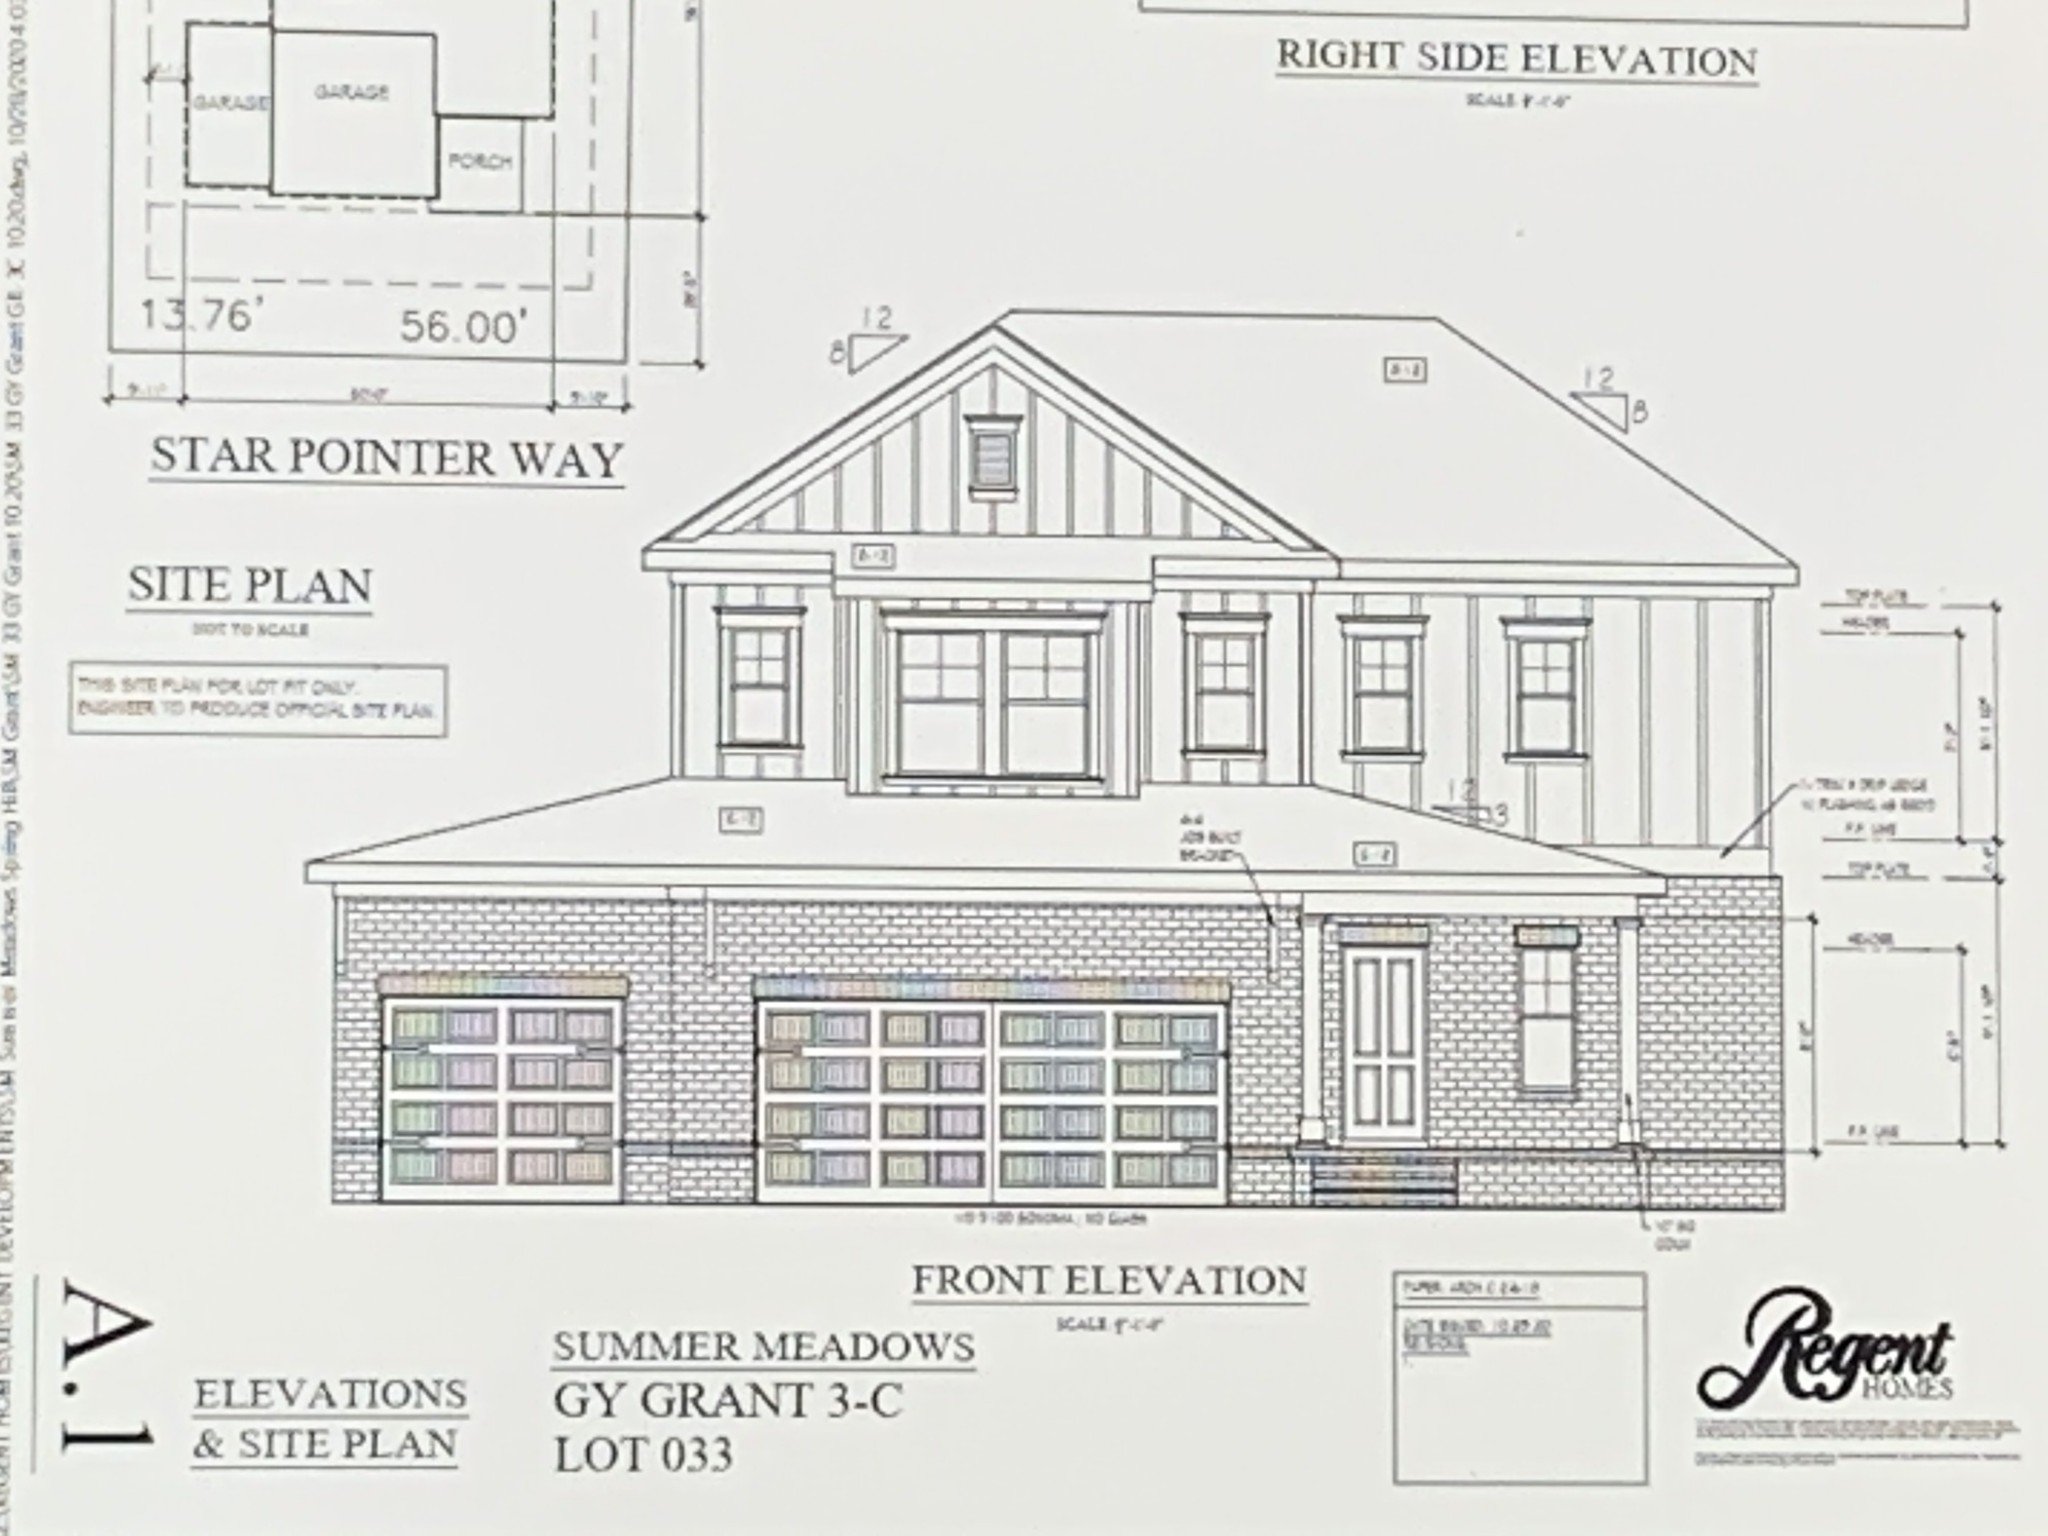 The GRANT will be READY July of 2021 !!! 2481 s/f  3 Car  Garage 4 Bedrooms, 3.5 Baths Master Suite 1st Floor (His & Hers Walk-in Closets) Three bedrooms up with Large Bonus Room Loft. Bed 2 has dedicated Bathroom. Huge Kitchen Island open to Dining Room. This is a Fabulous House with Loads of room and Yes,,, 3 Car Garage,,,,